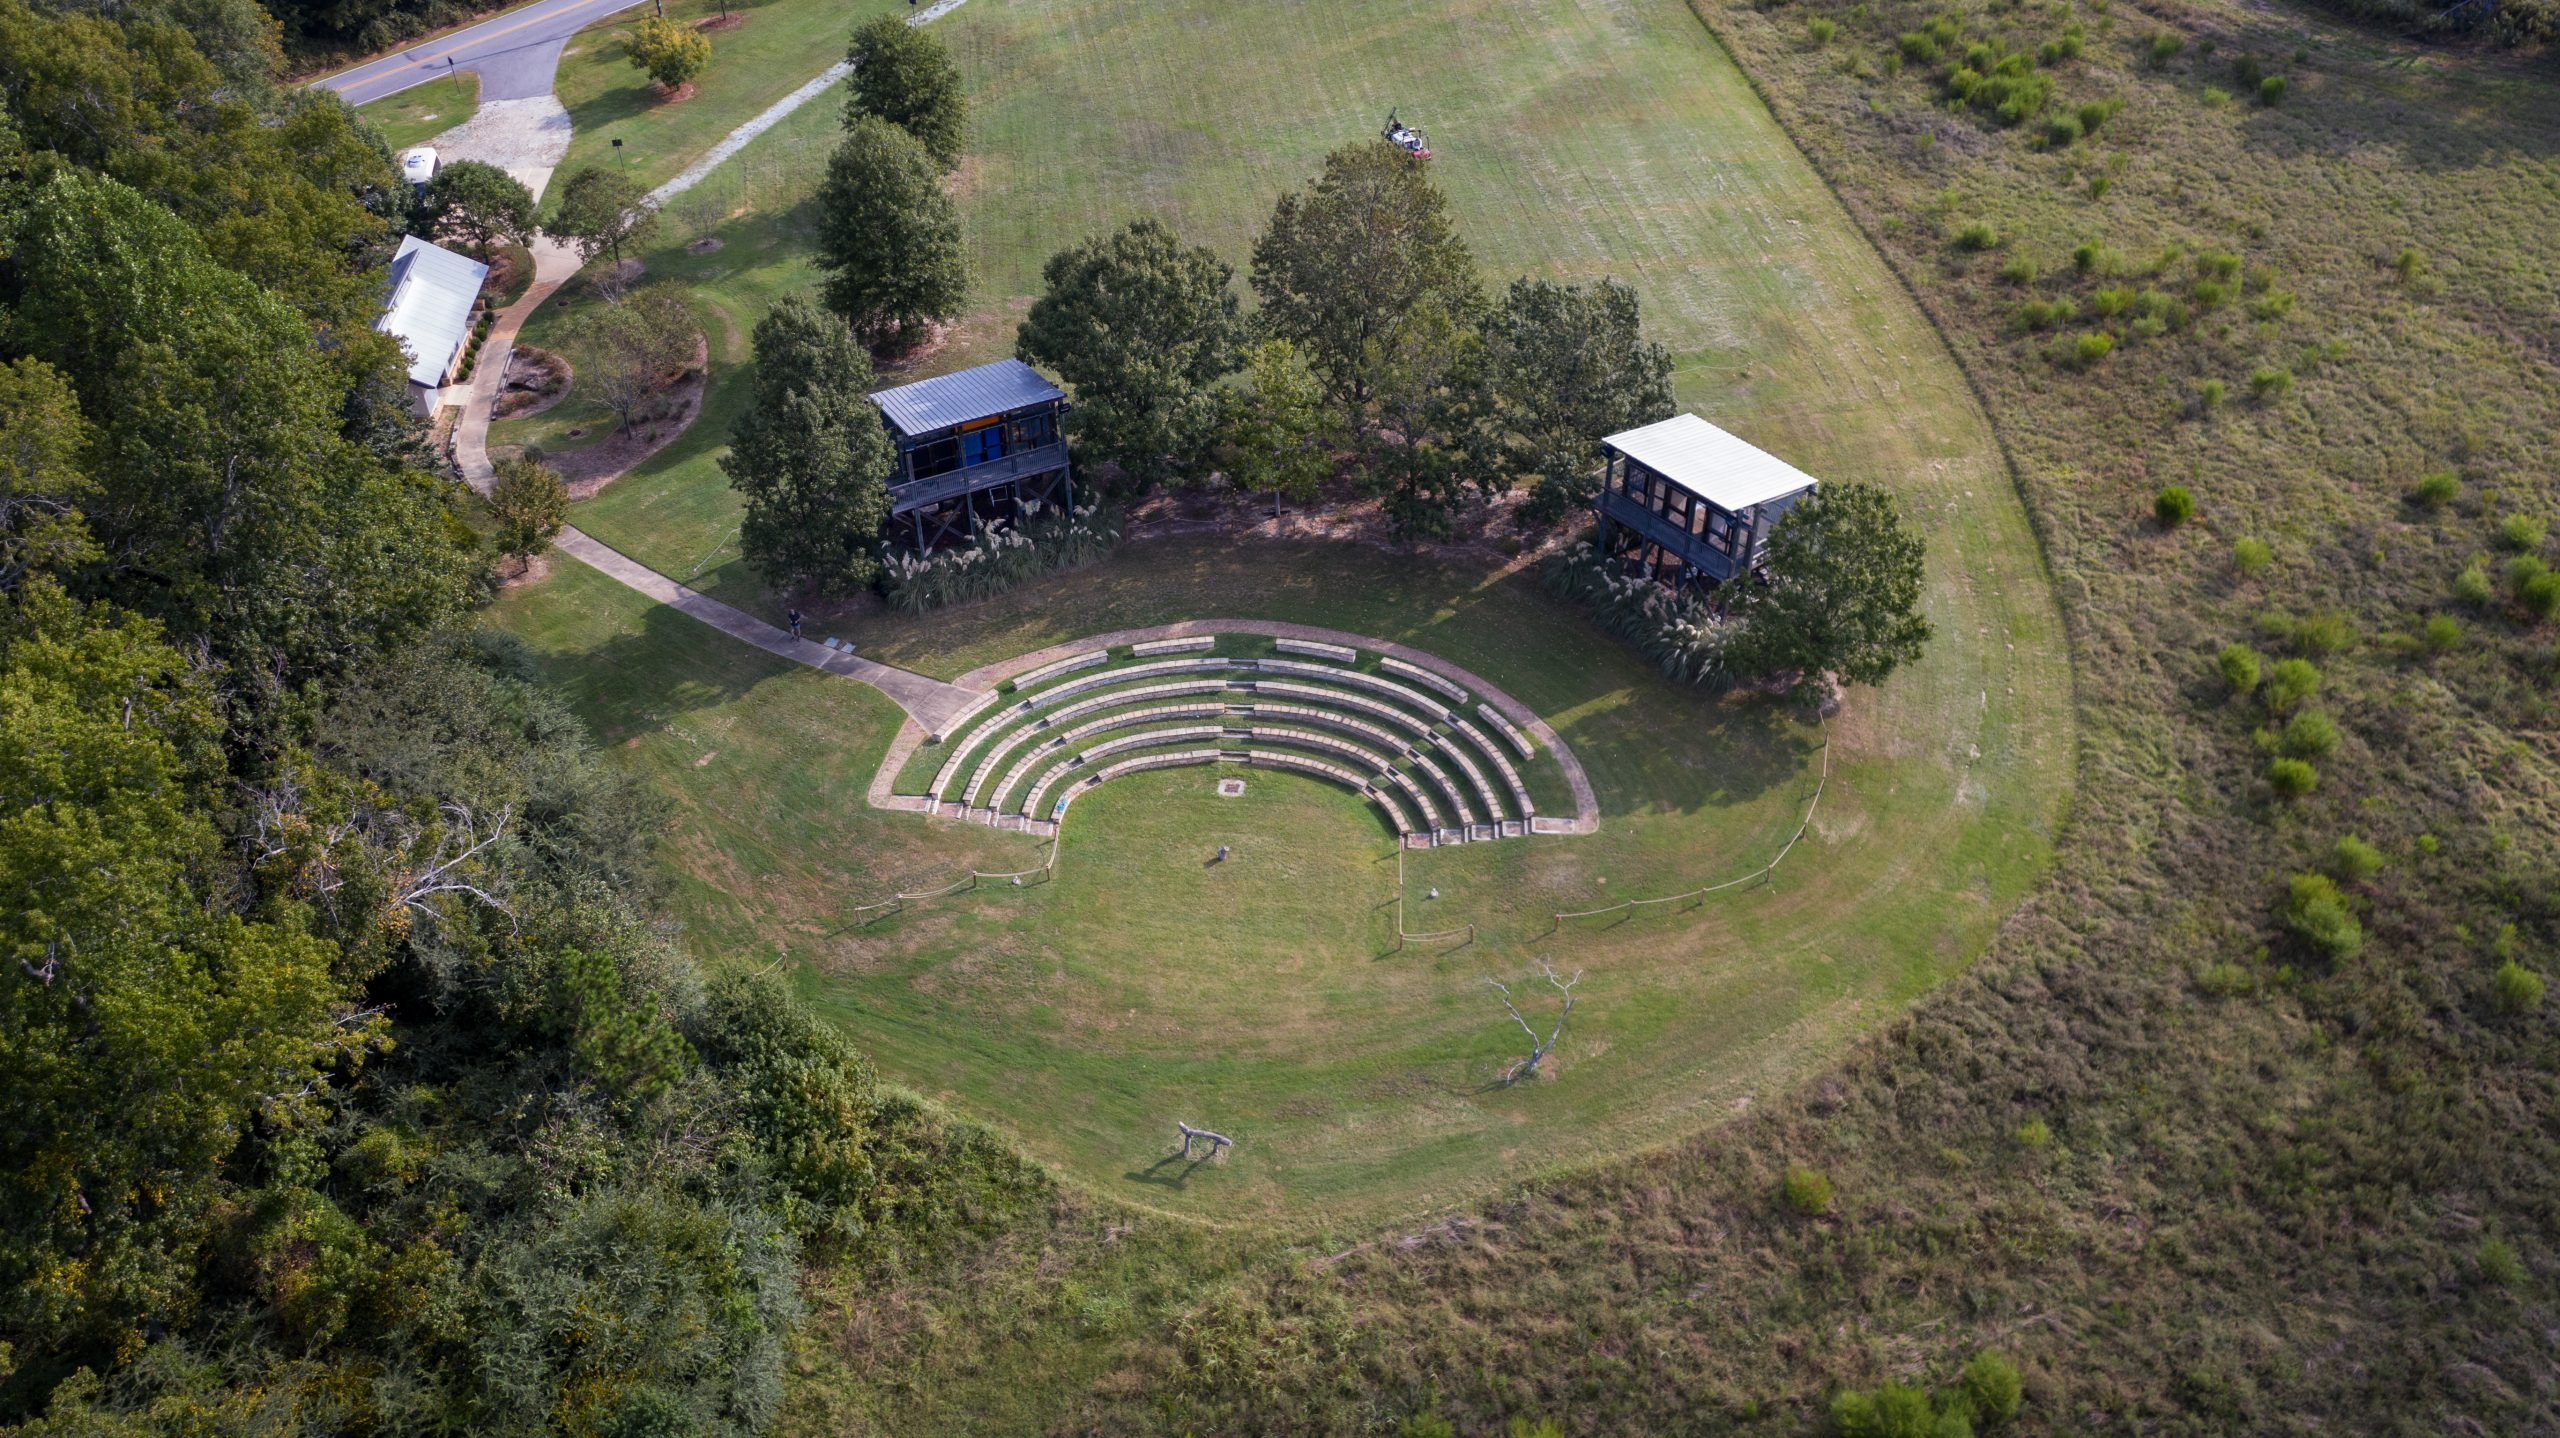 outdoor amphitheater view from sky